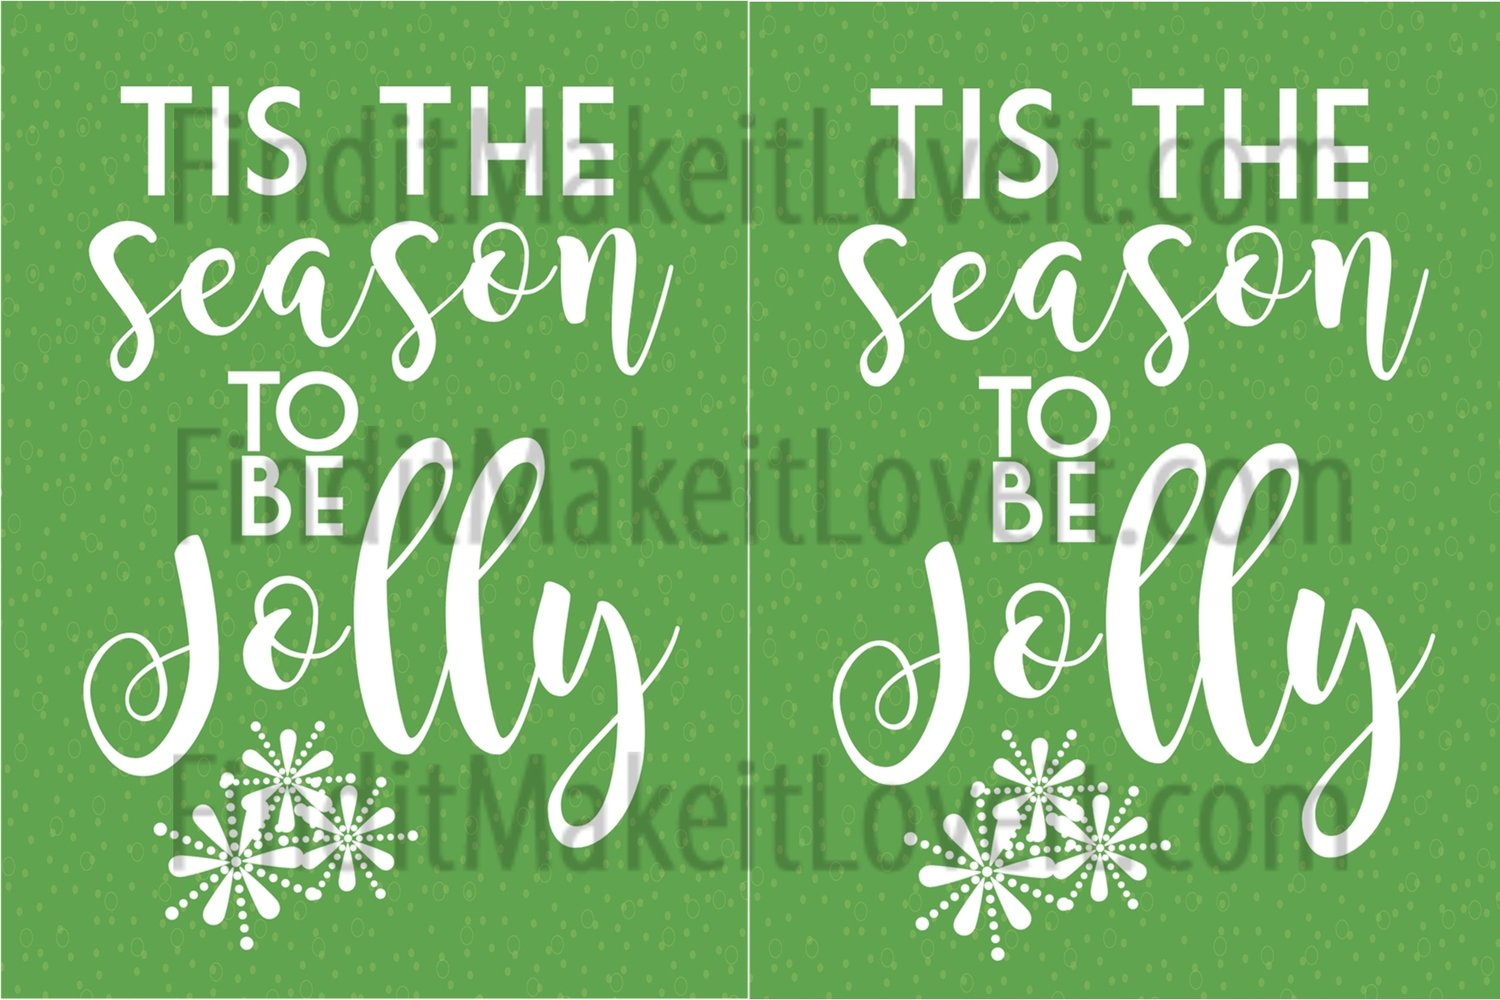 Tis the season printable 3x4